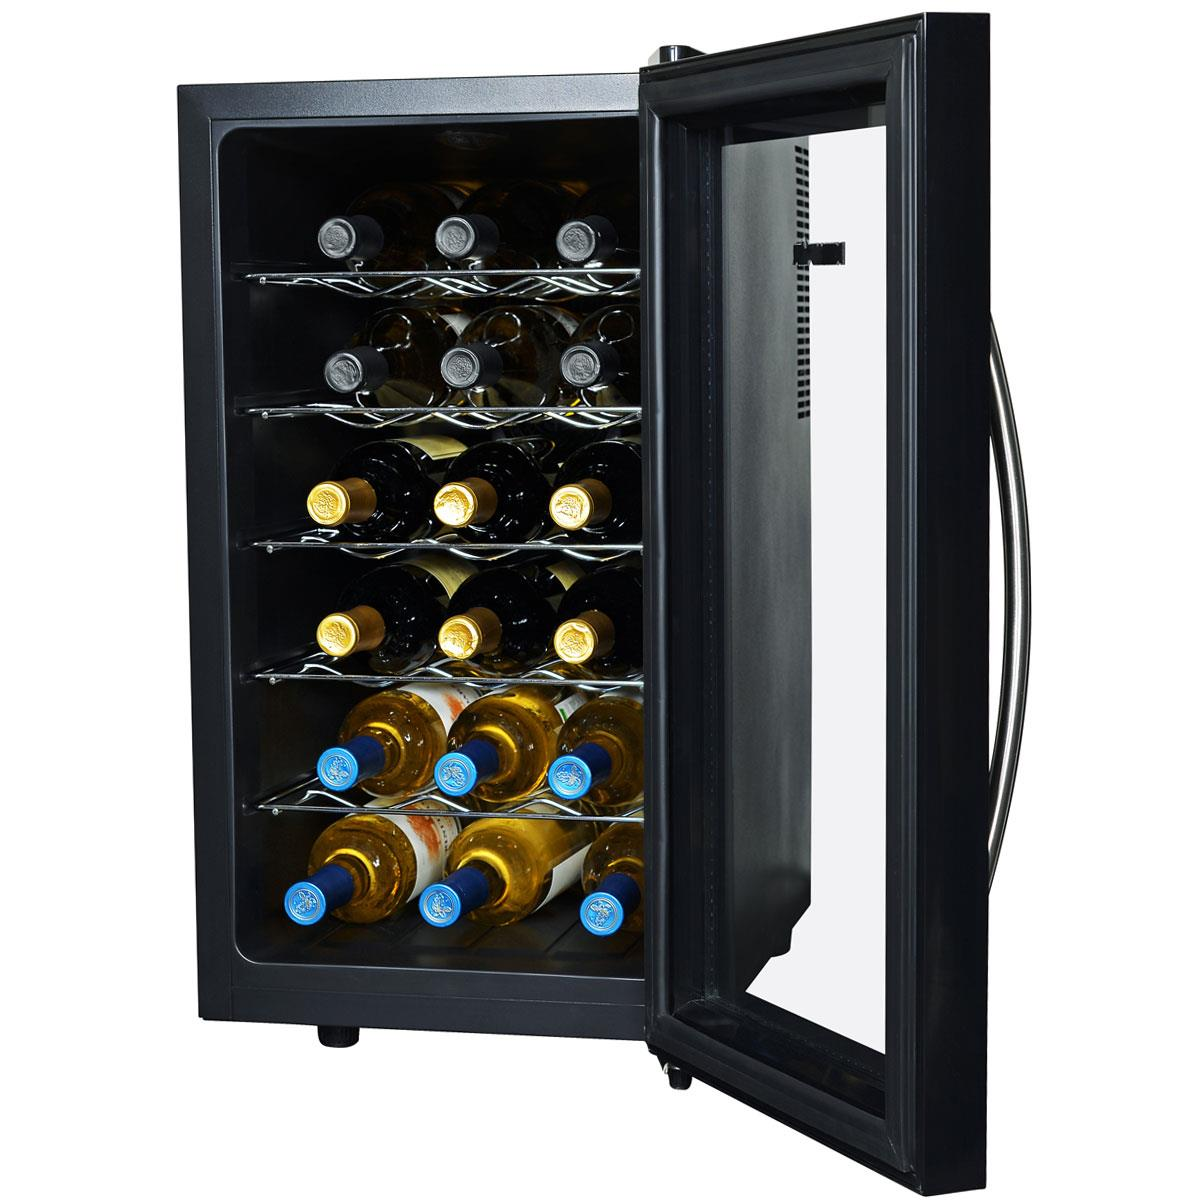 wine-cooler-appliance-repair-los-angeles-near-you